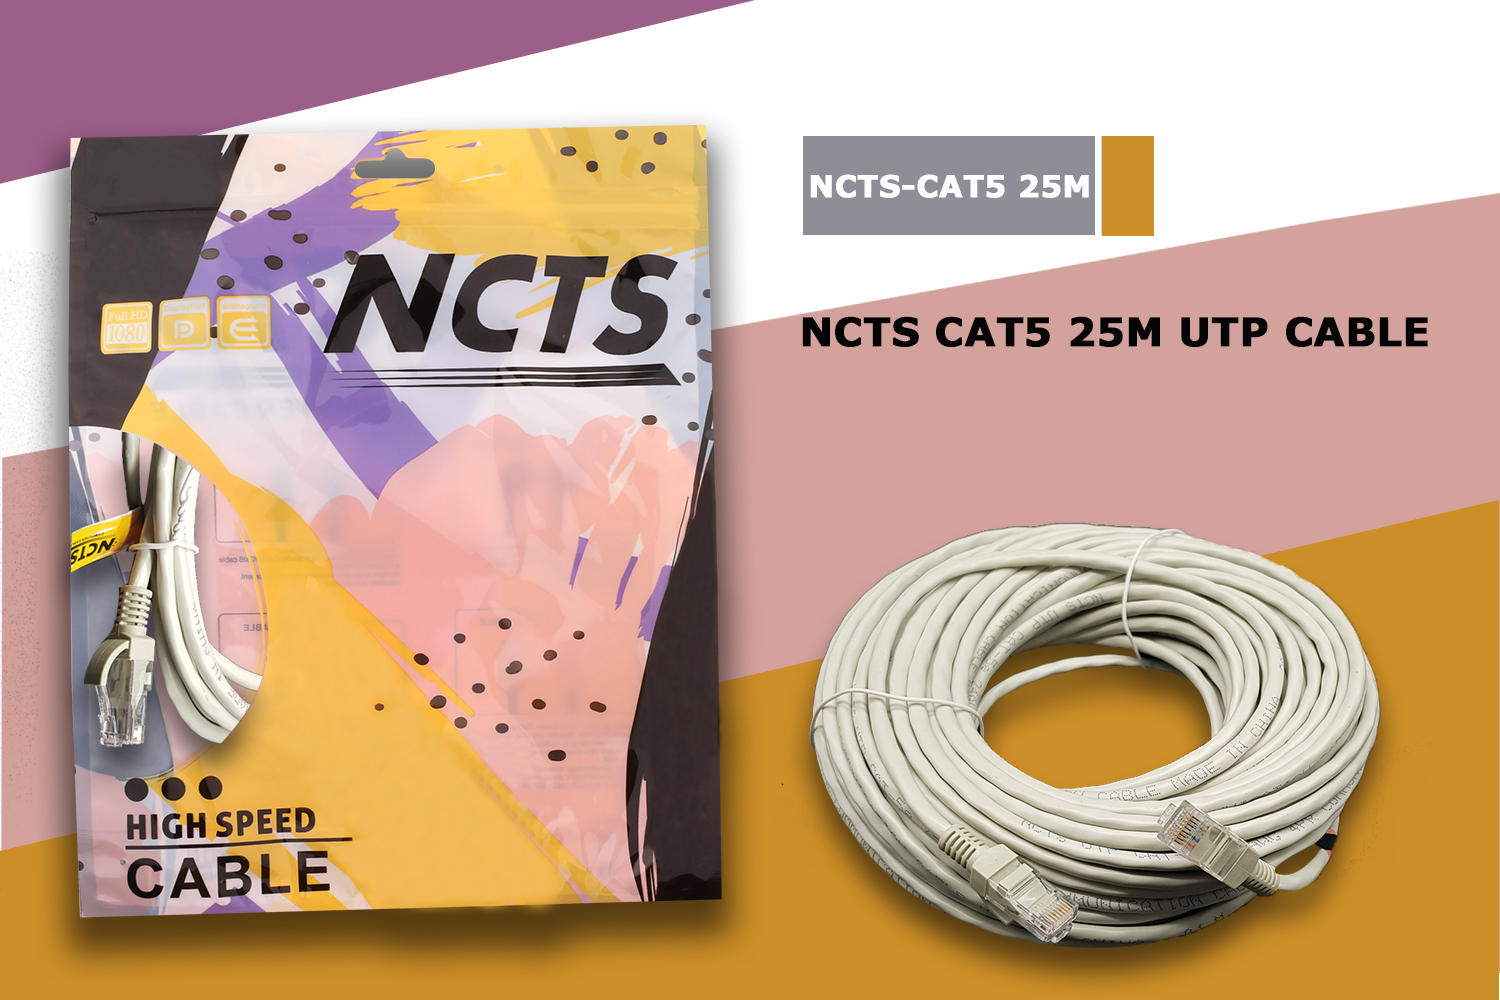 NCTS CAT5 UTP 25M,24AWG 4PR,7*8*0.12mm CCA